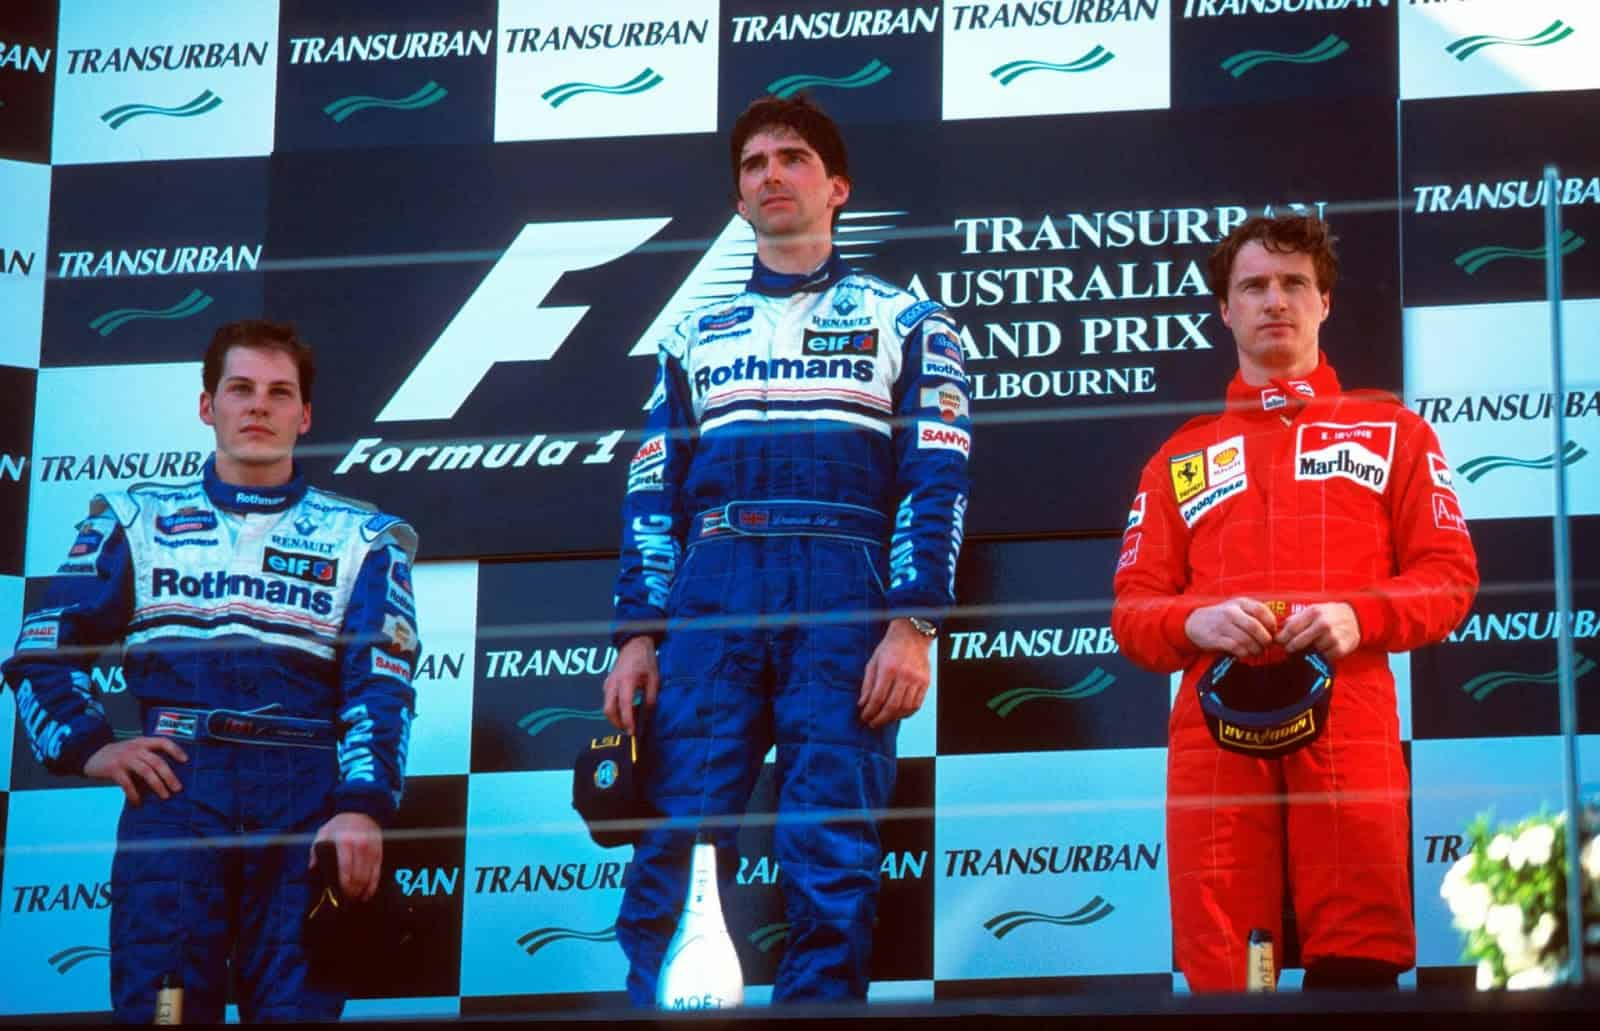 Damon Hill and Jacques Villeneuve Williams FW18 Eddie Irvine Ferrari Australian GP F1 1996 podium Photo Williams